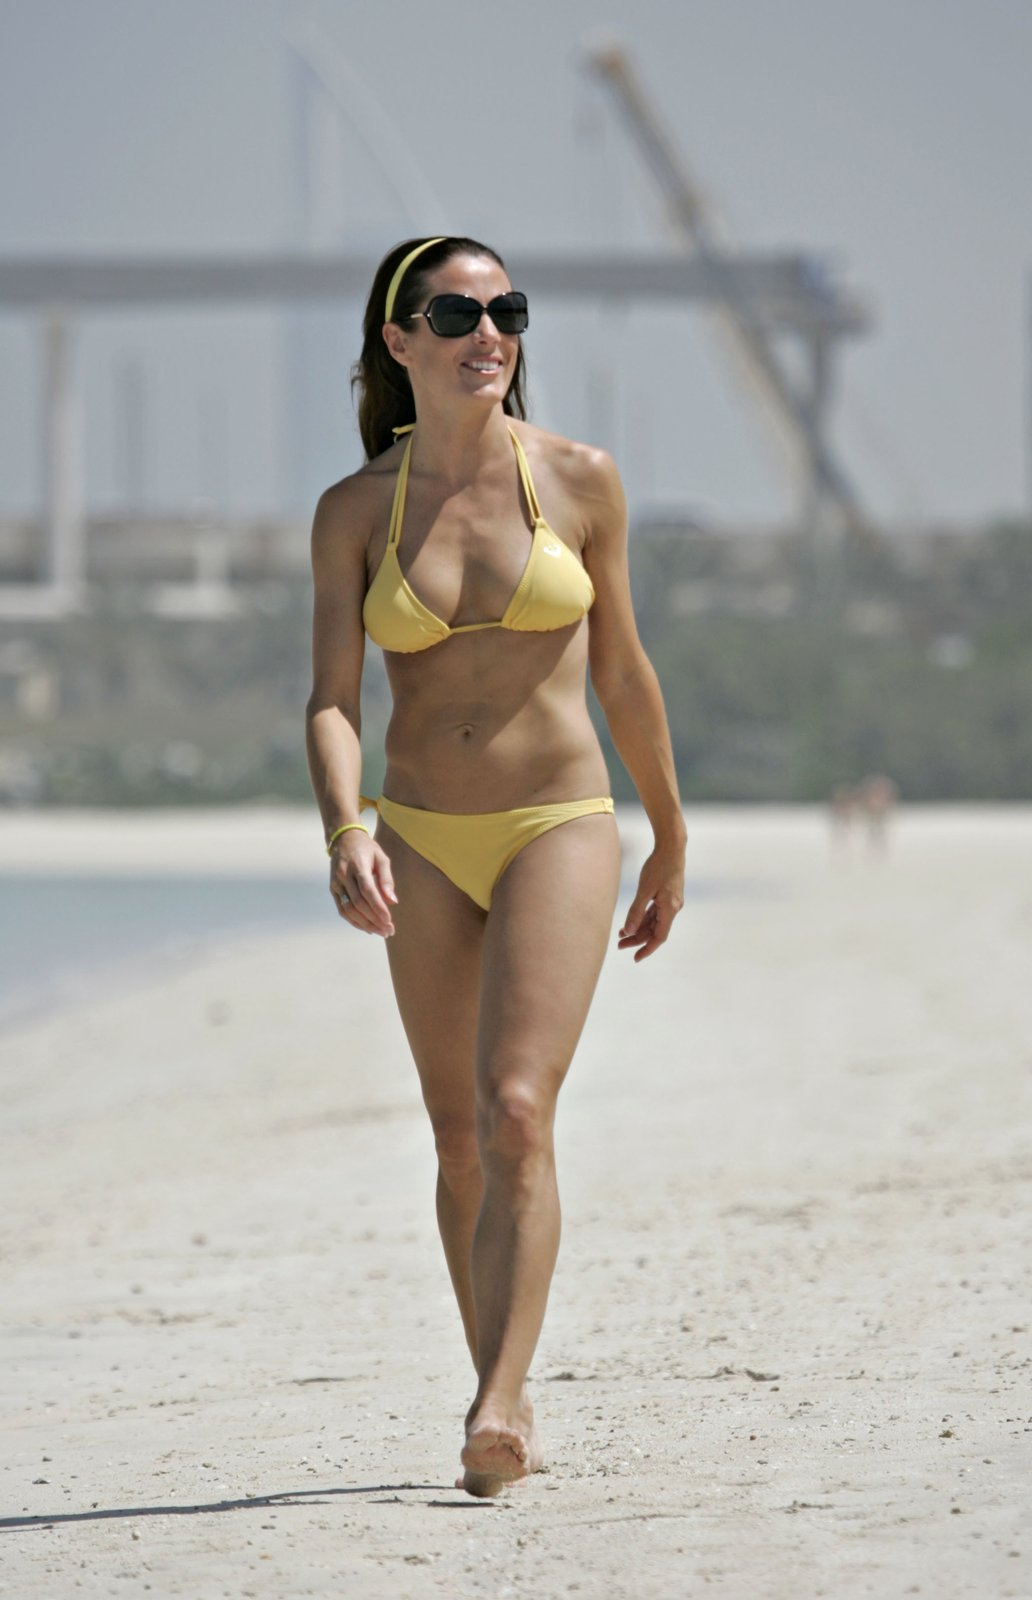 Natalie Pinkham at beach